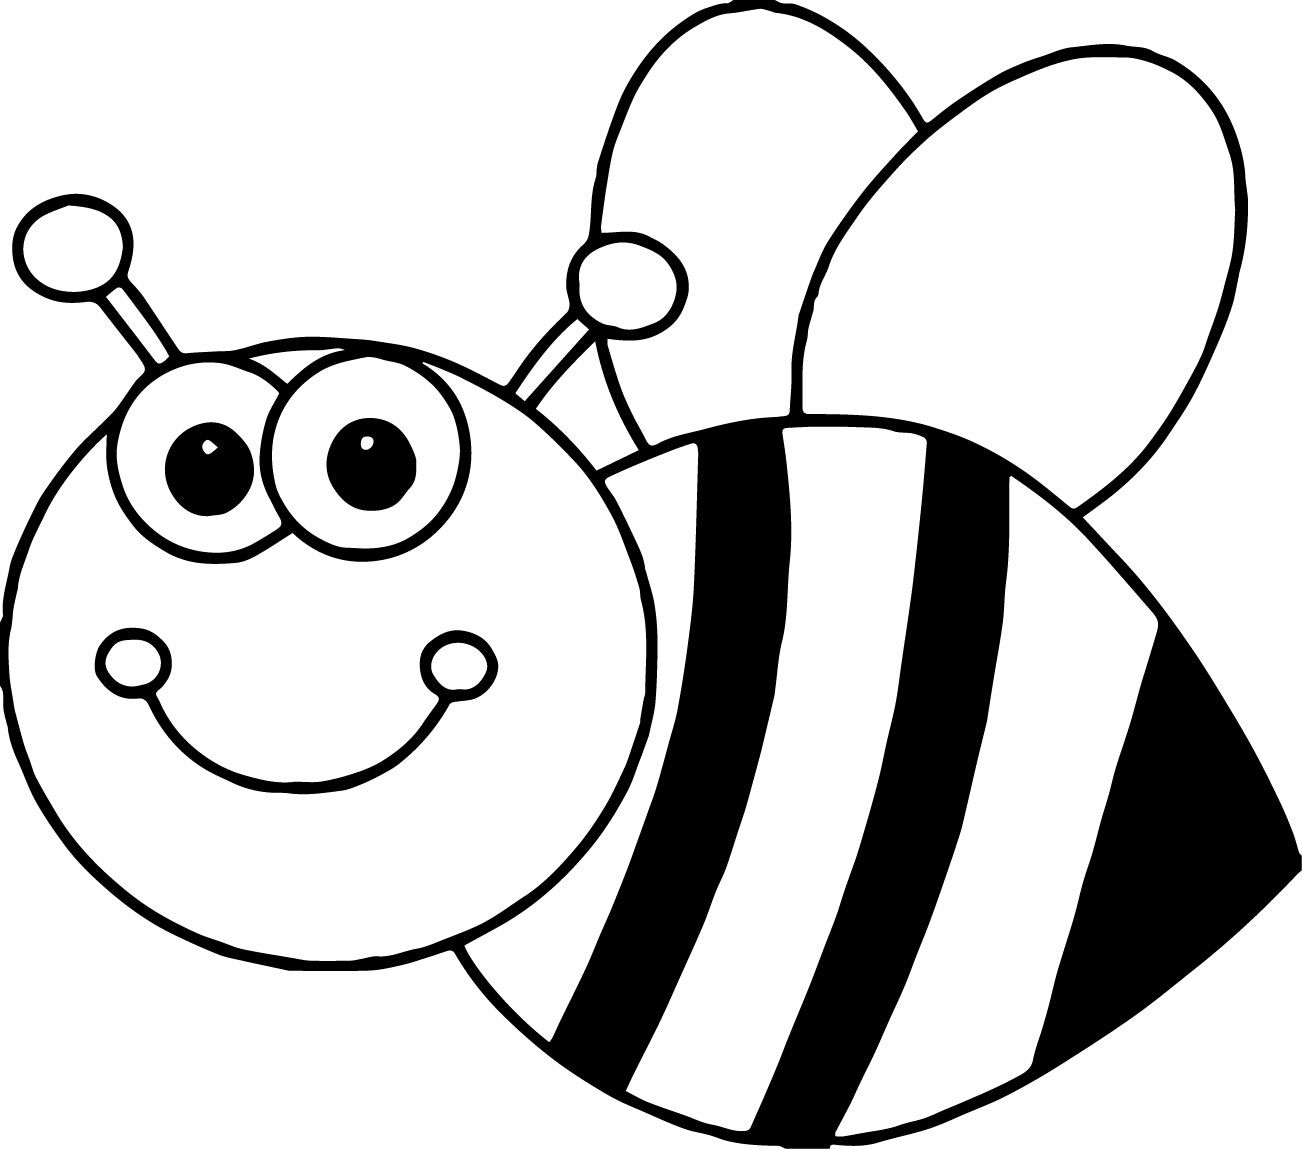 beehive coloring page bee coloring page wecoloringpagecom beehive page coloring